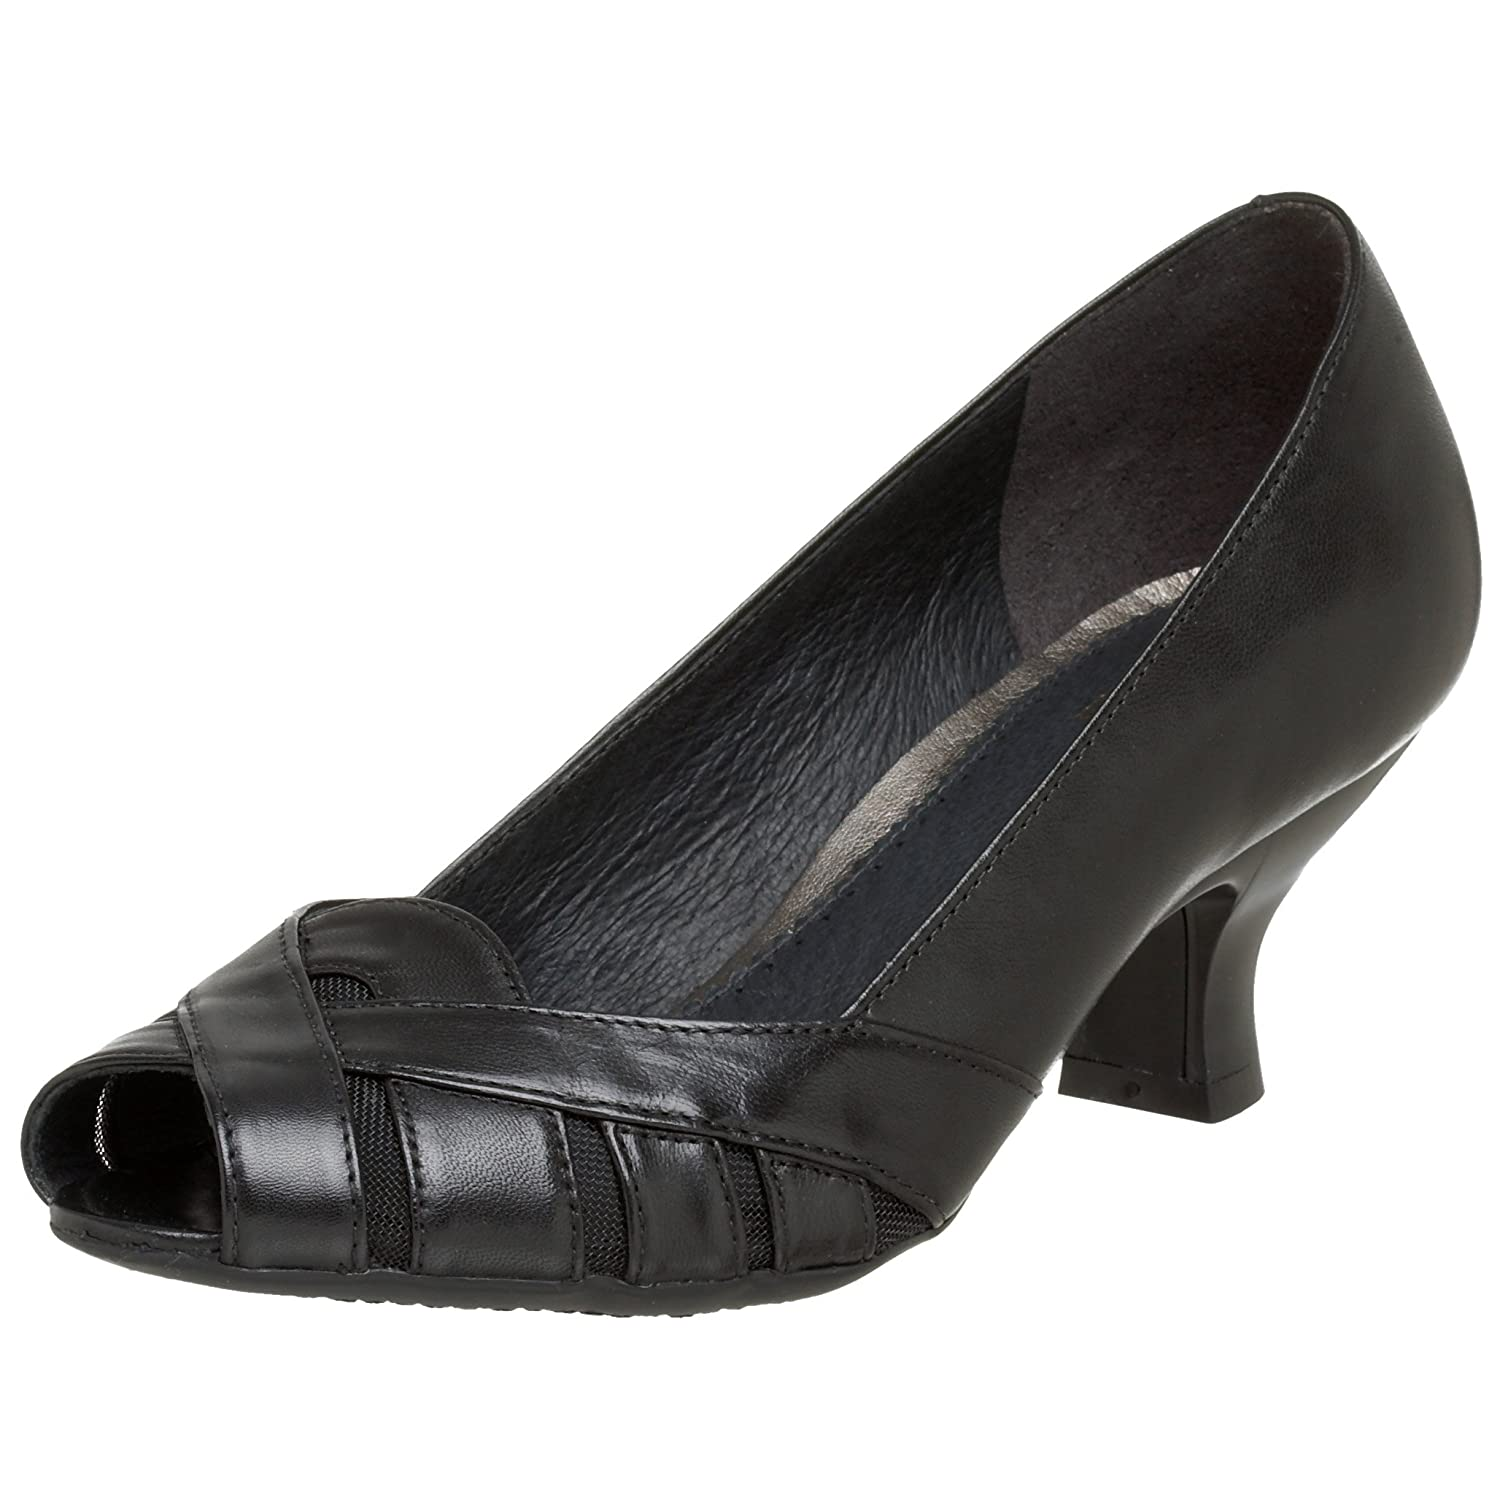 Clarks Women's Apple Star Pump - Free Overnight Shipping & Return Shipping: Endless.com from endless.com